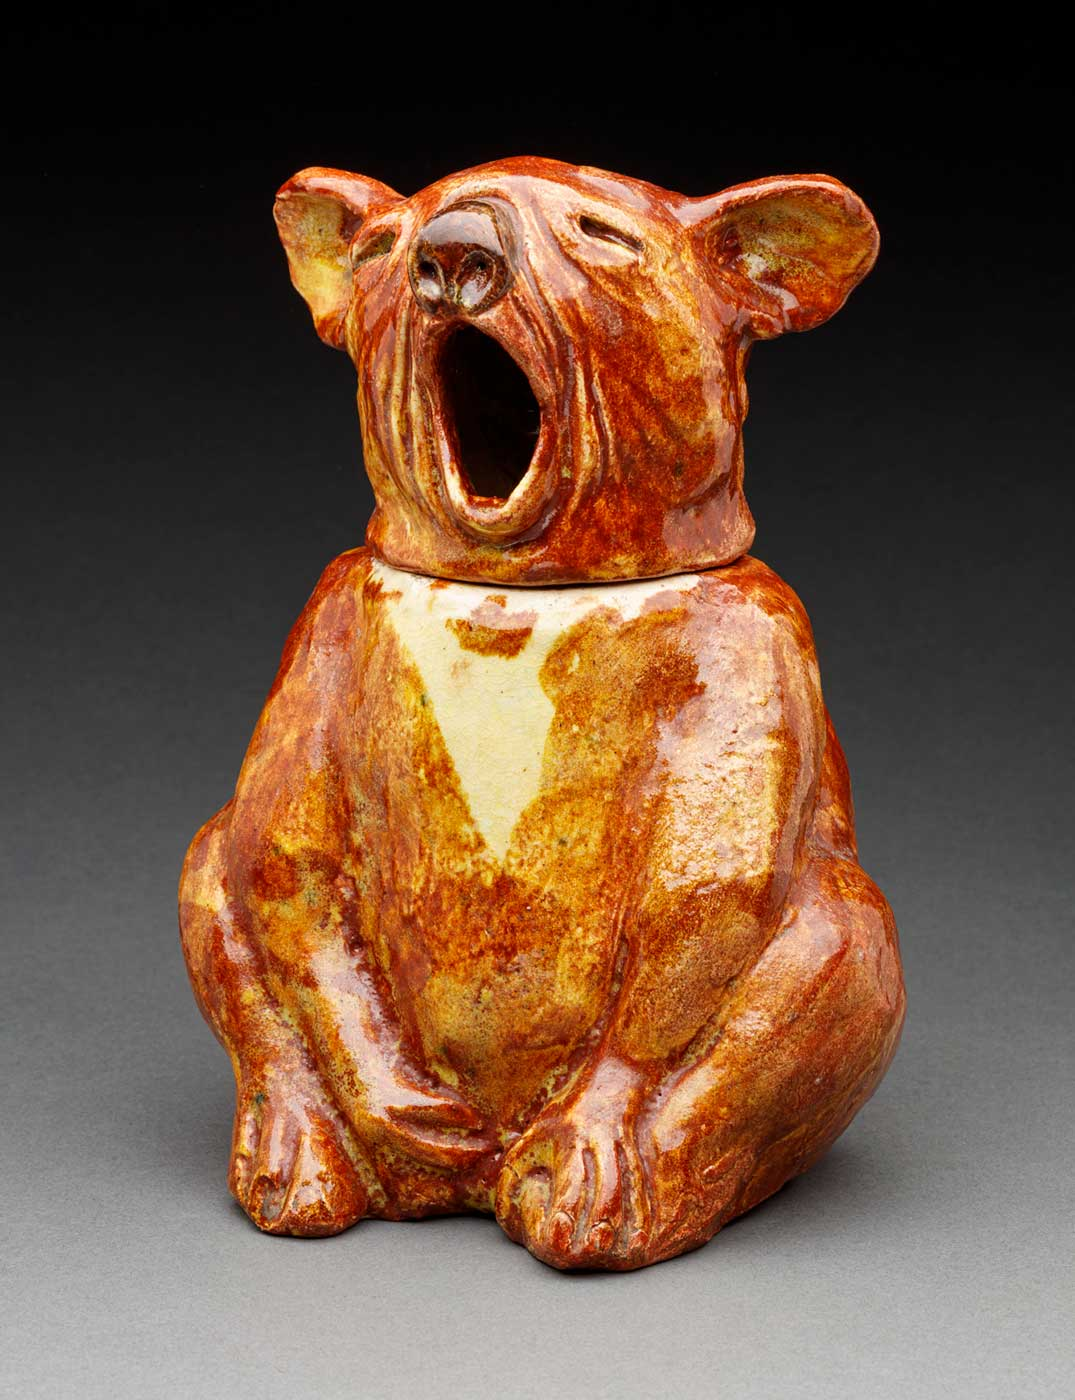 A ceramic biscuit jar in the shape of a yawning koala. It is painted in shades of brown and cream.